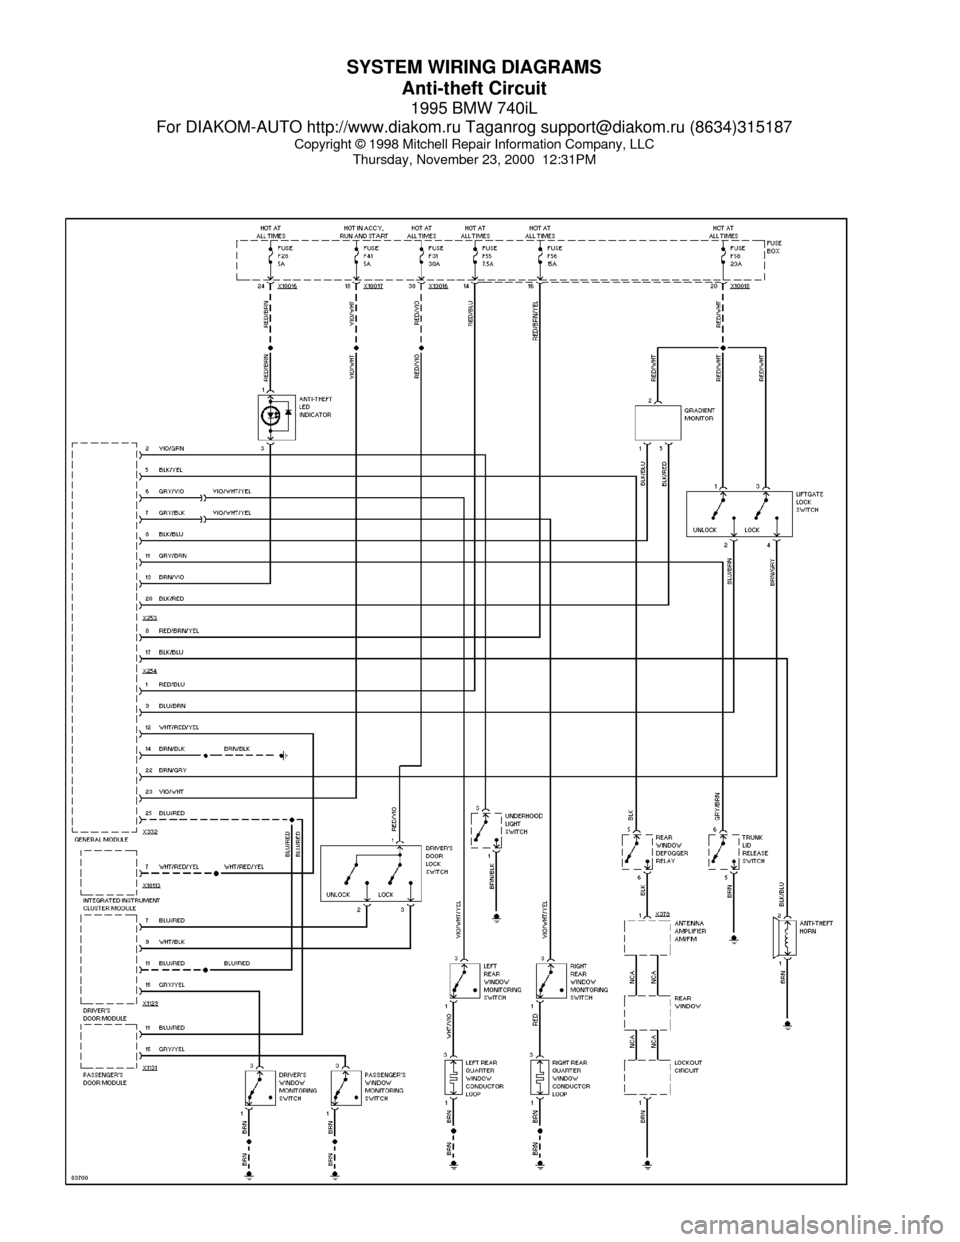 1999 bmw 740il fuse diagram bmw 740il 1995 e38 system wiring diagrams 2000 bmw 740il fuse box